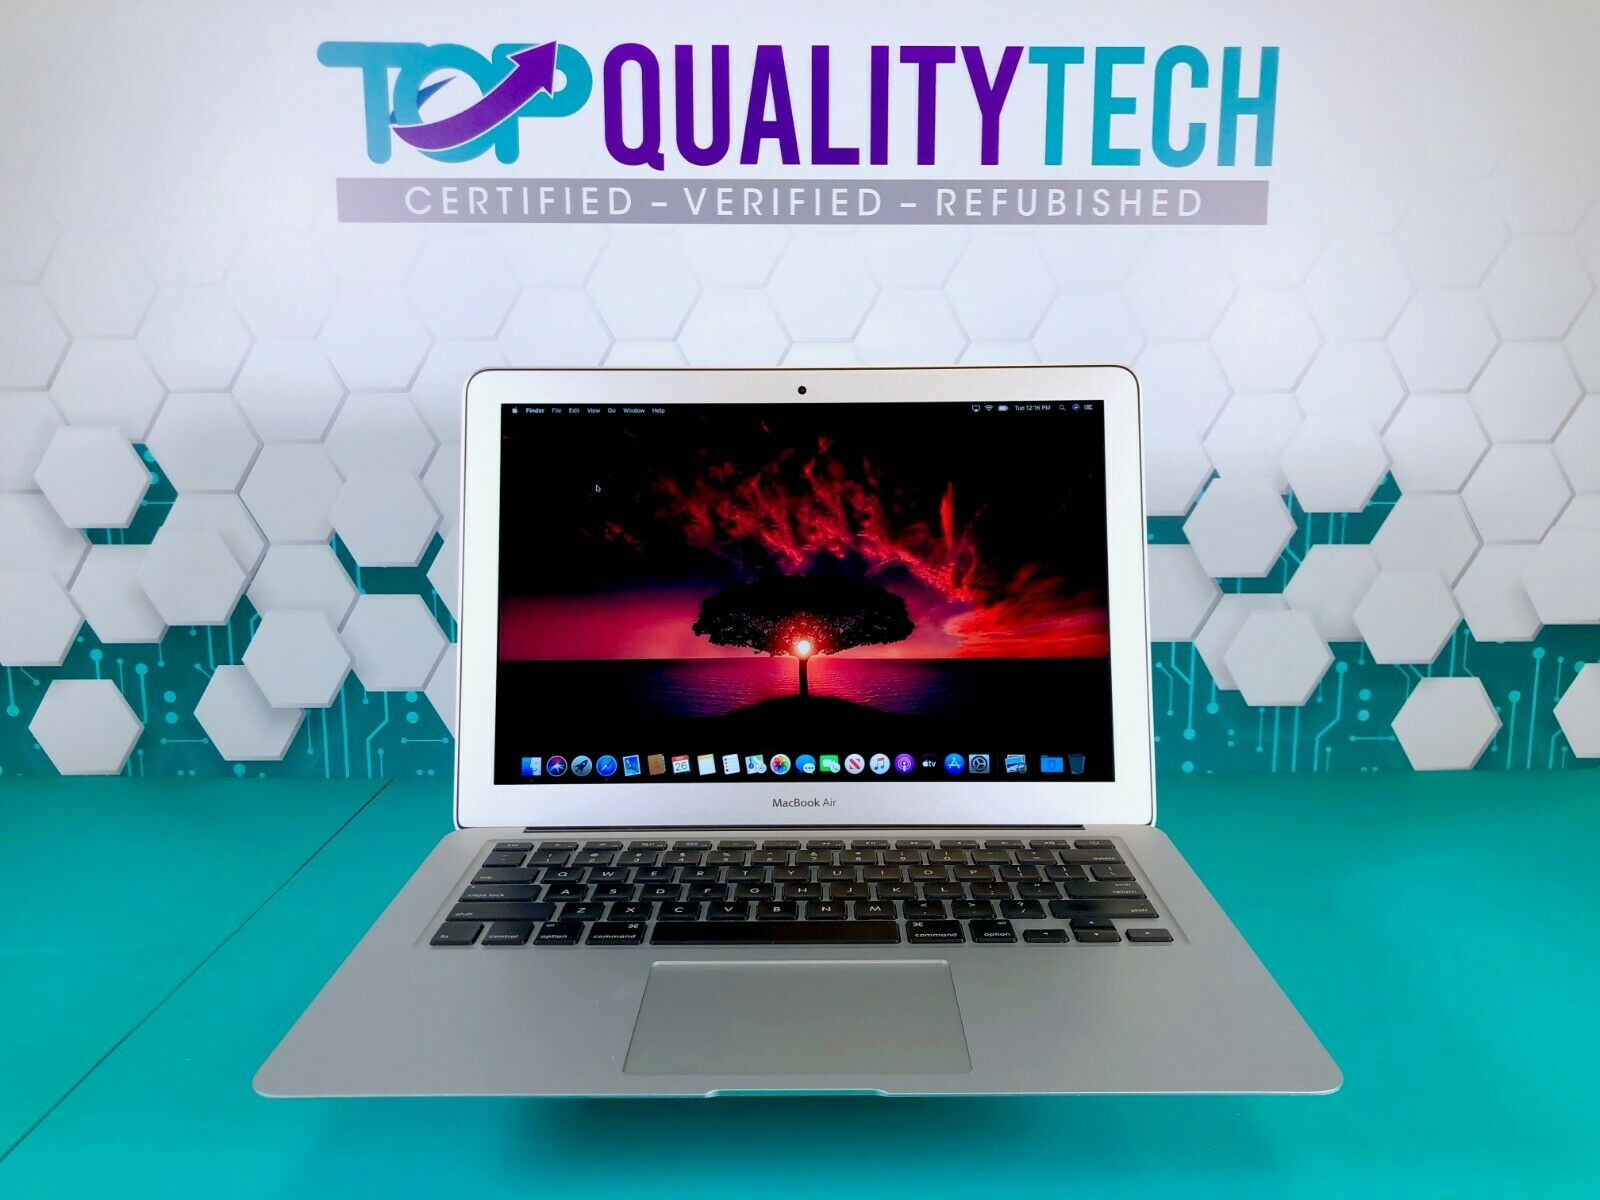 Apple MacBook Air 13 inch Laptop / 3 YEAR WARRANTY / CORE i7 / SSD / OS2019. Buy it now for 565.00